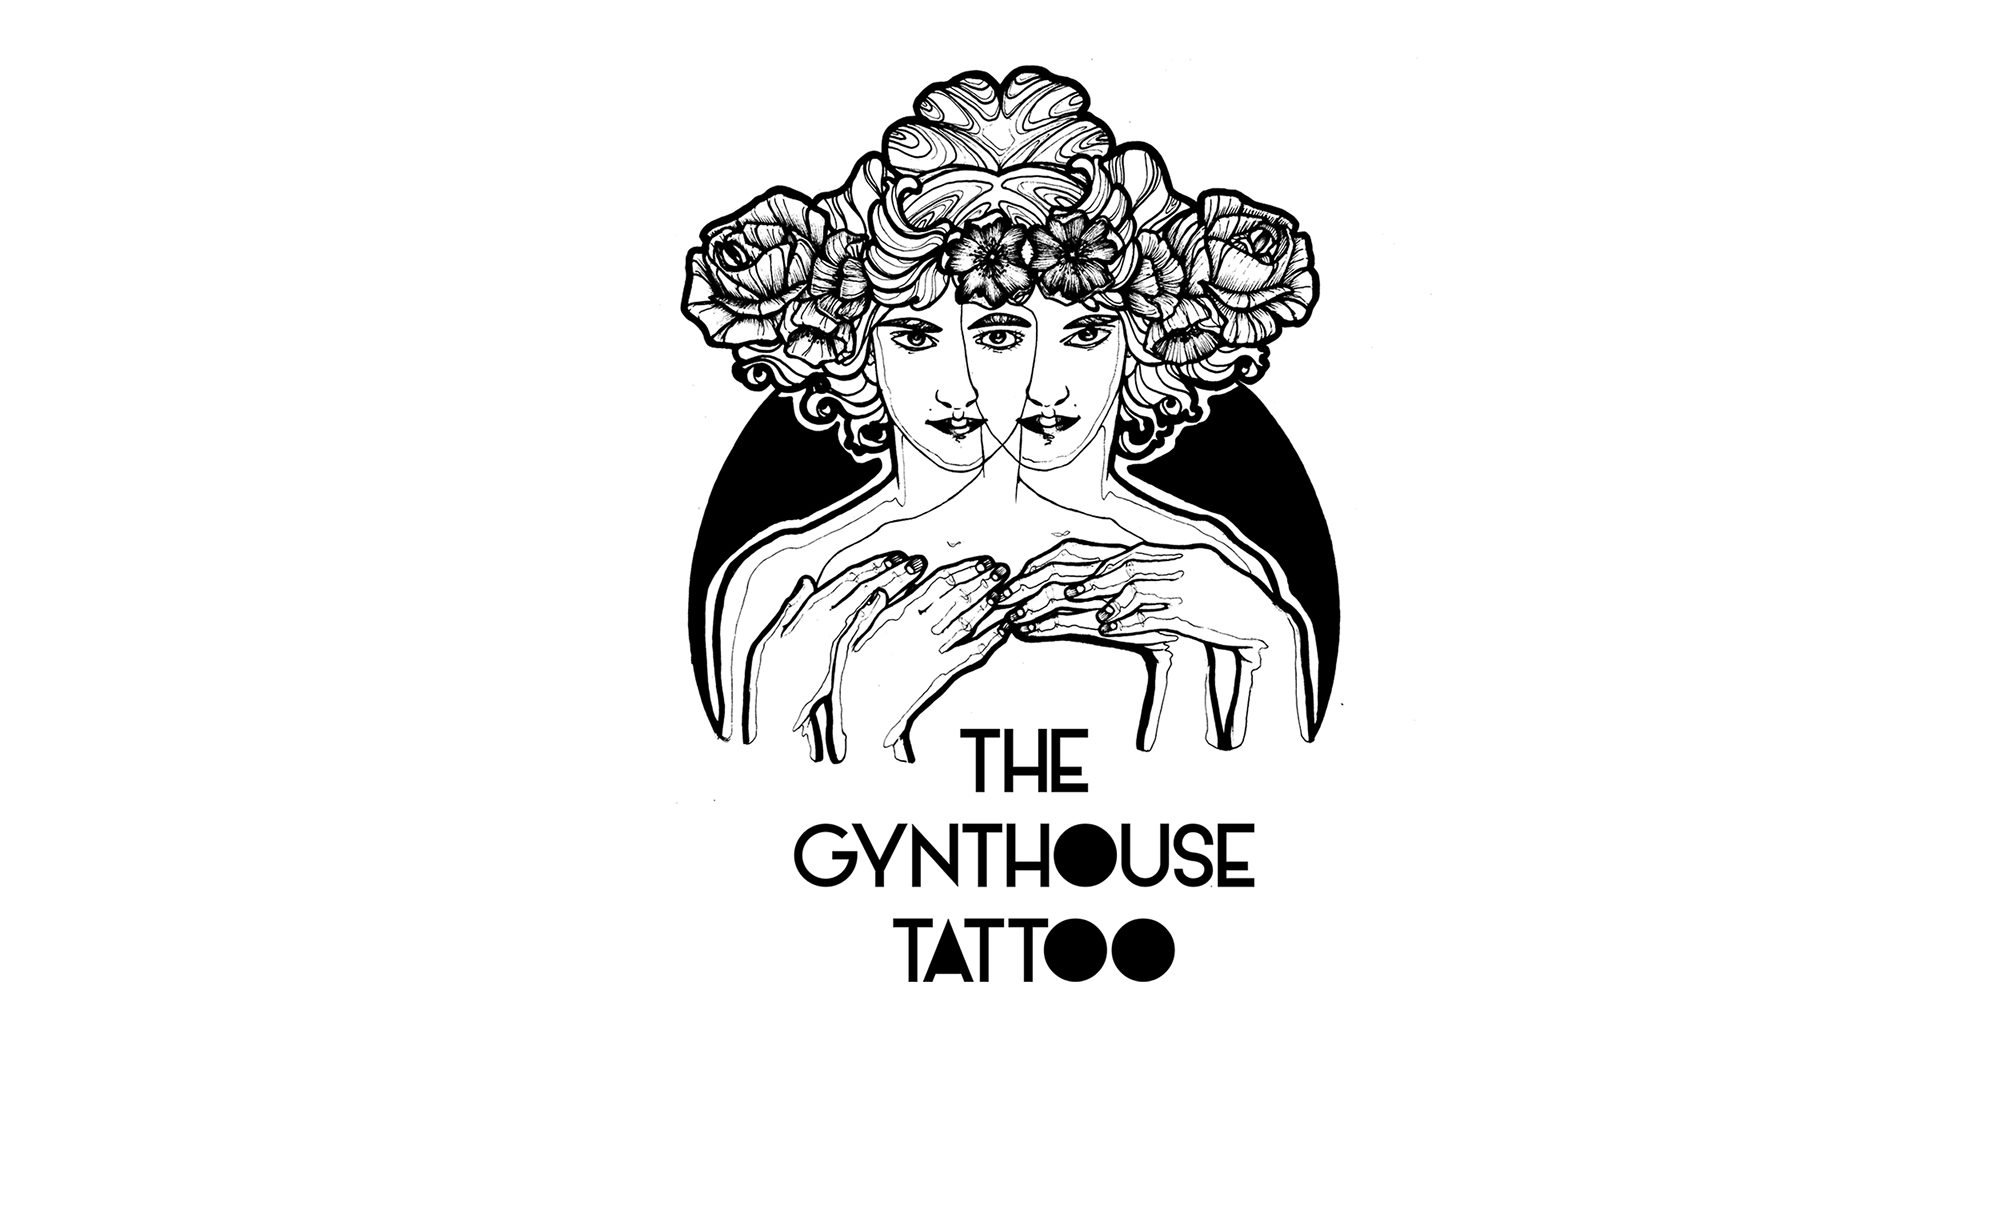 THE GYNTHOUSE TATTOO